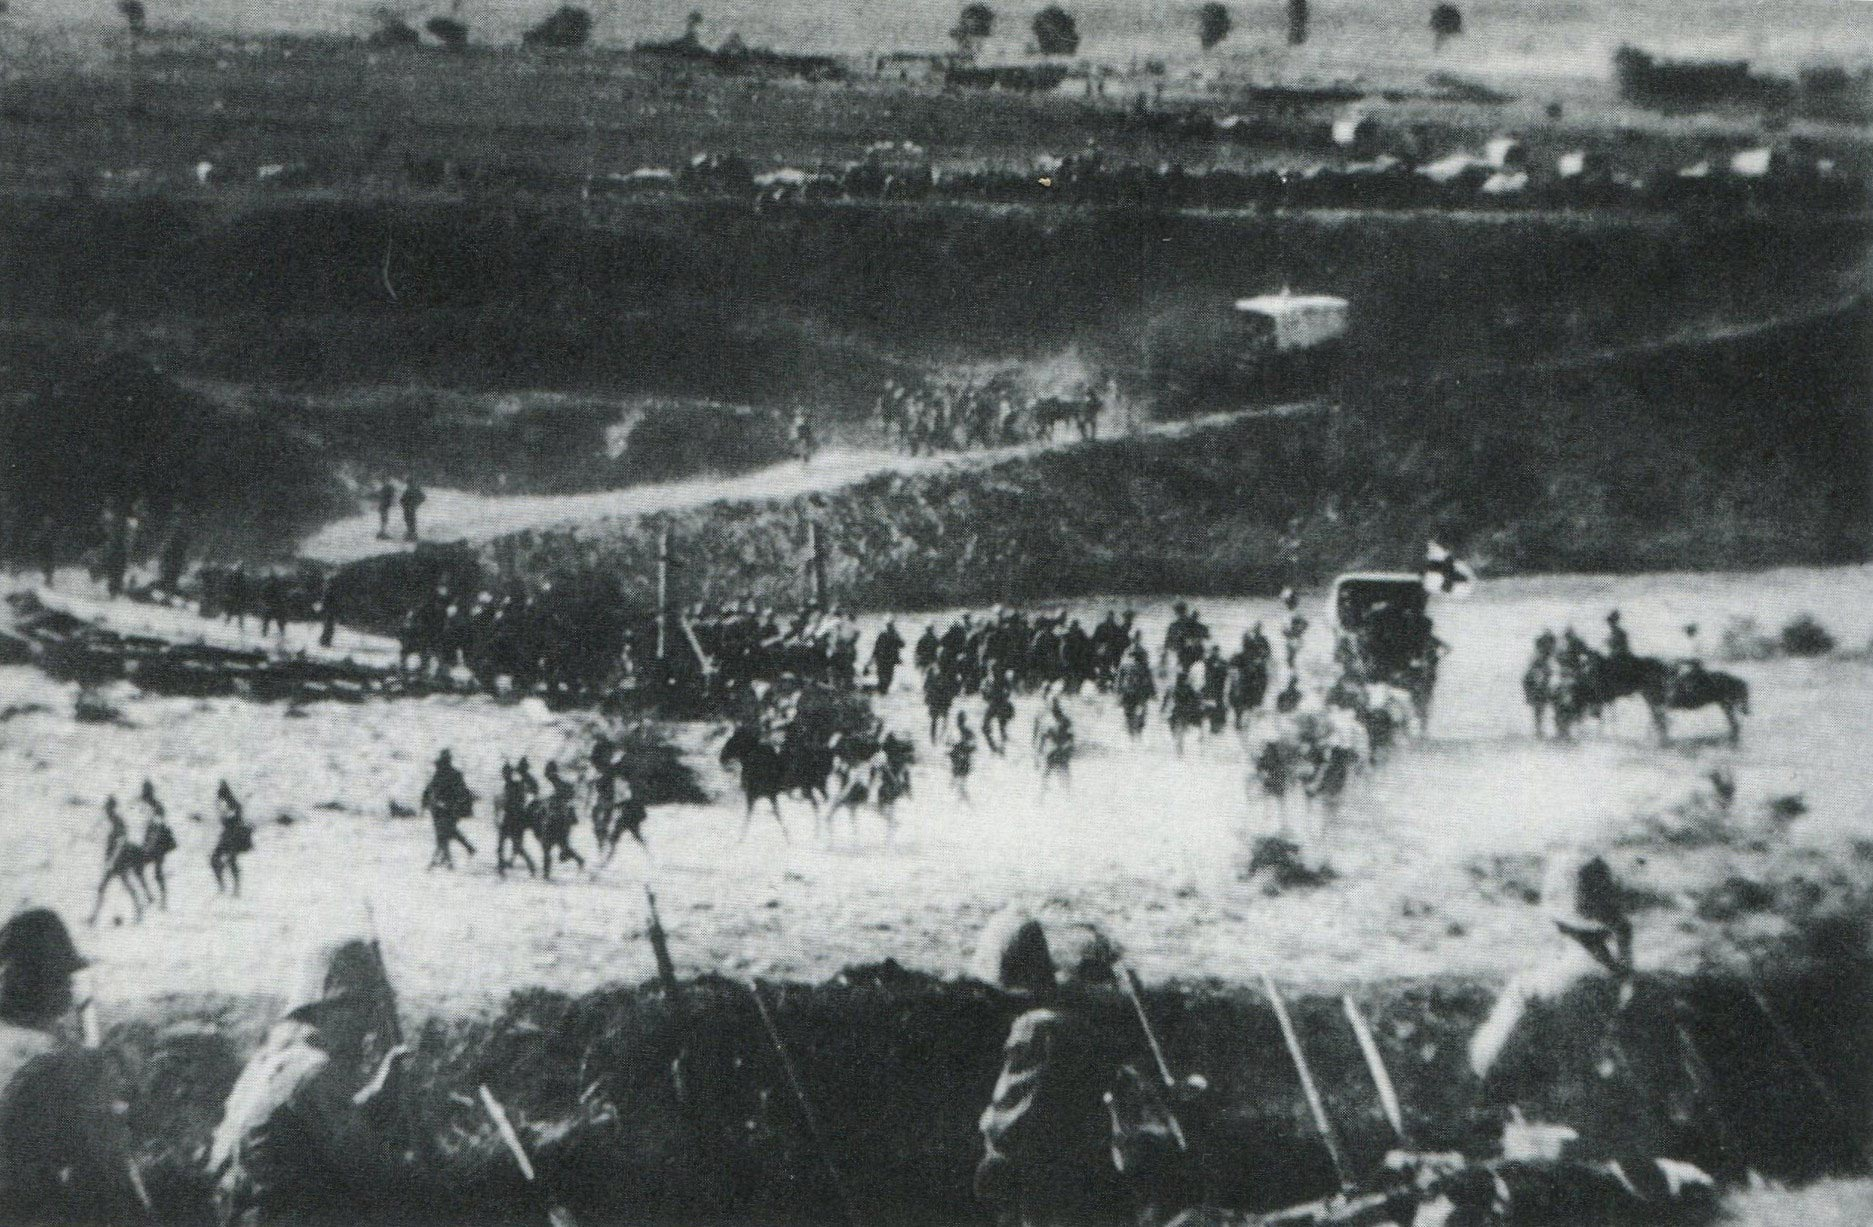 british-troops-retreating-across-the-tugela-river-after-the-battle-of-spion-kop